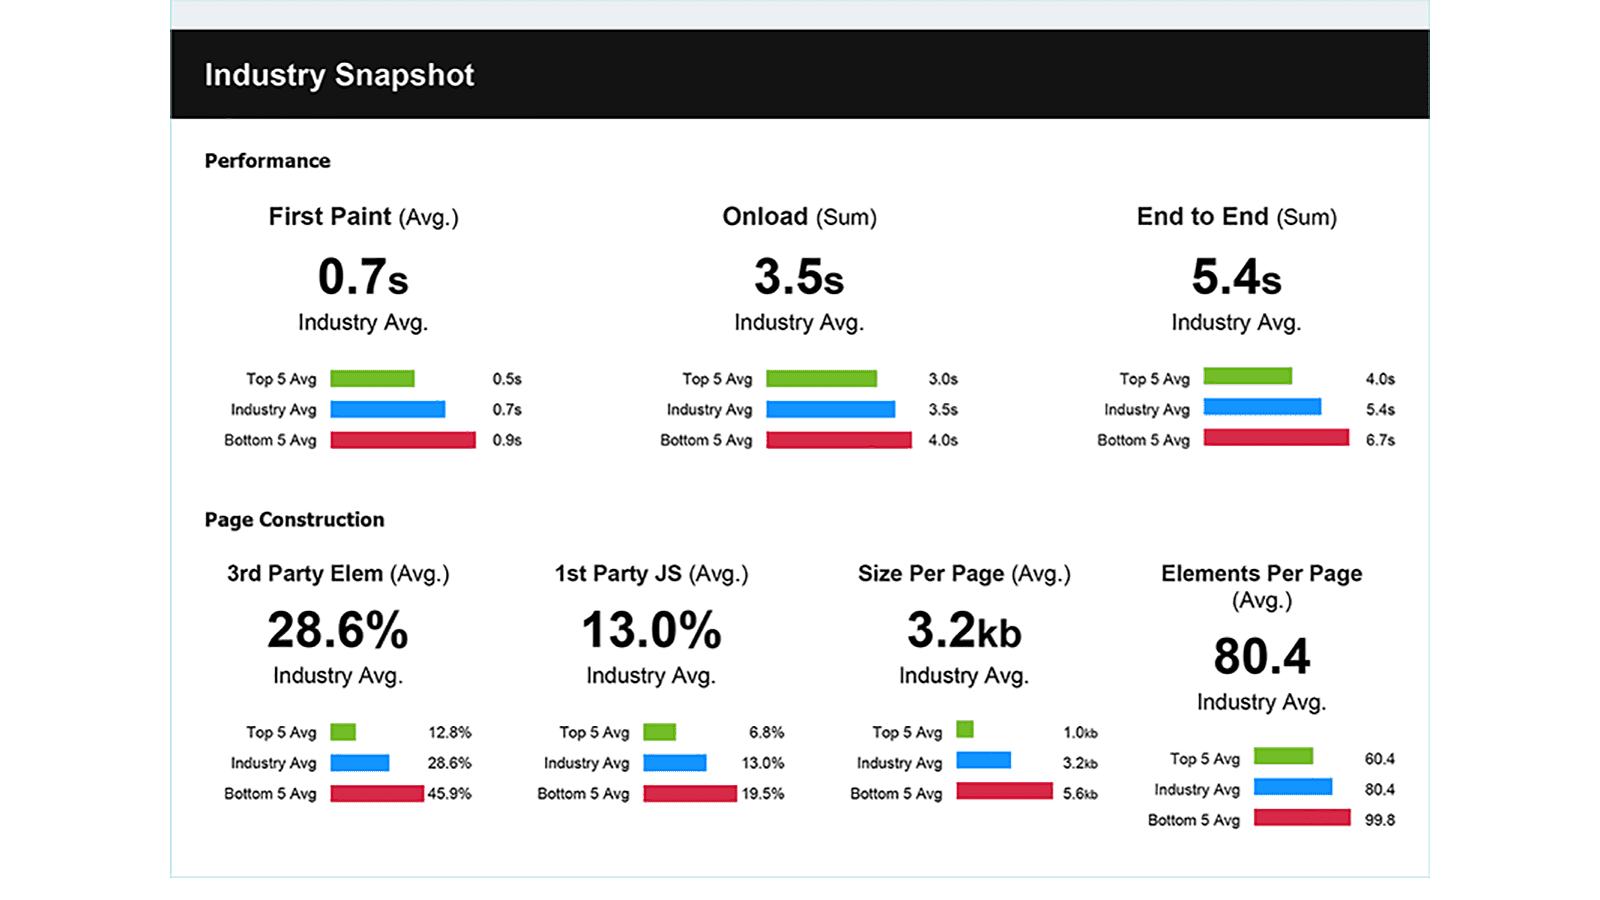 Analyze multiple data points to summarize web performance in your industry